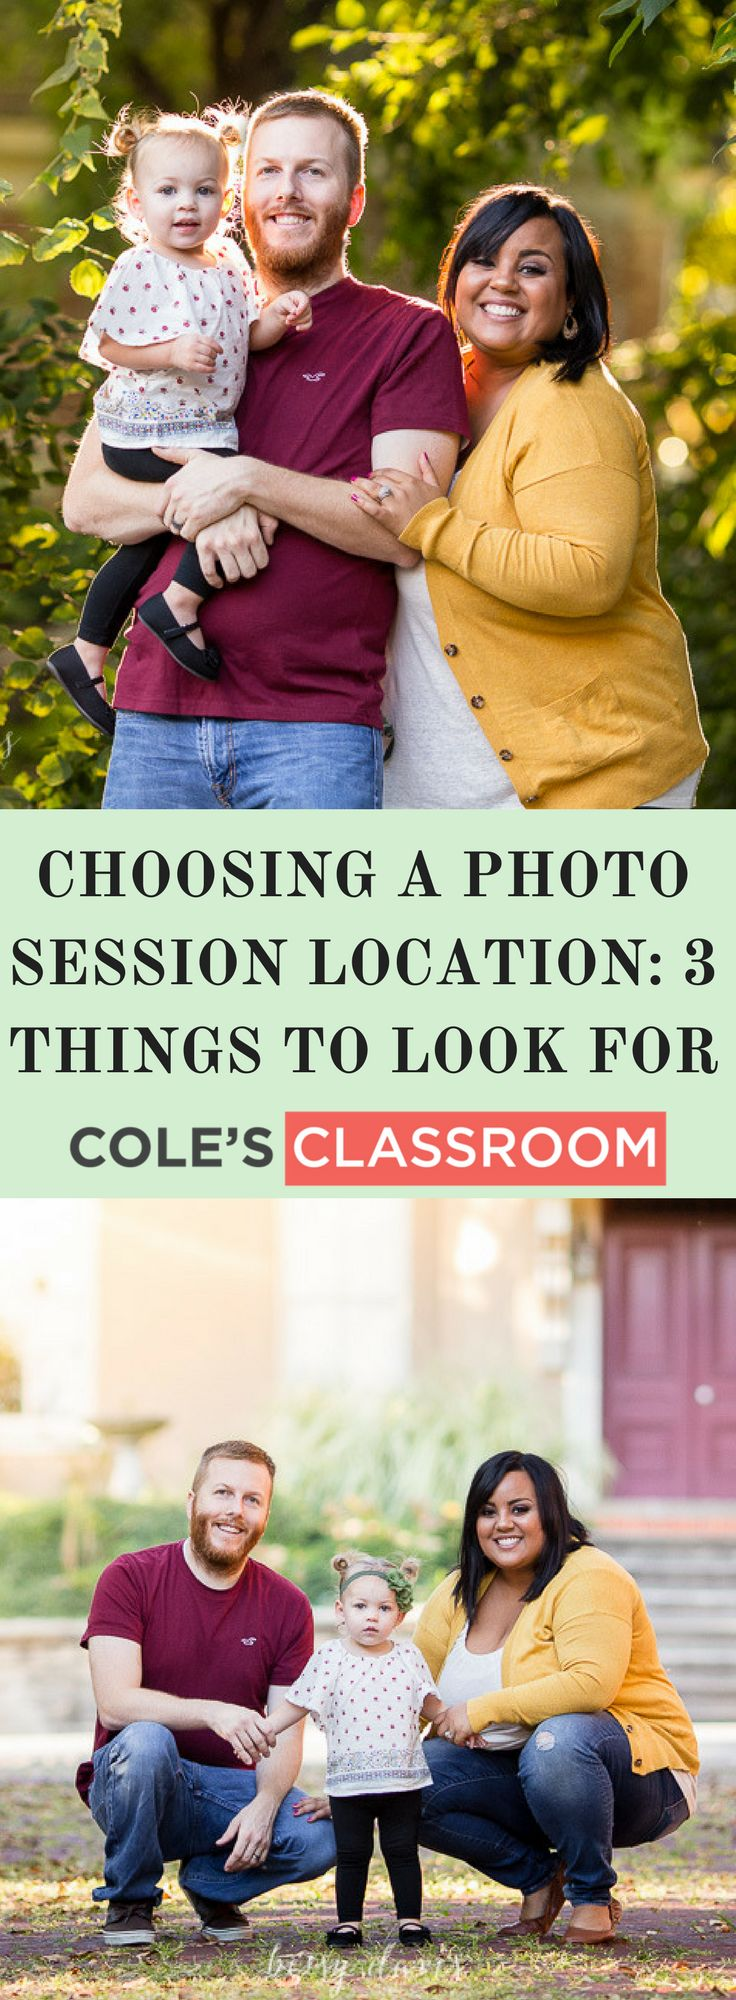 Photography Tips and Techniques: Choosing a Photo Session Location: 3 Things to Look For. Find out more at: https://www.colesclassroom.com/choosing-photo-session-location-3-things-look/